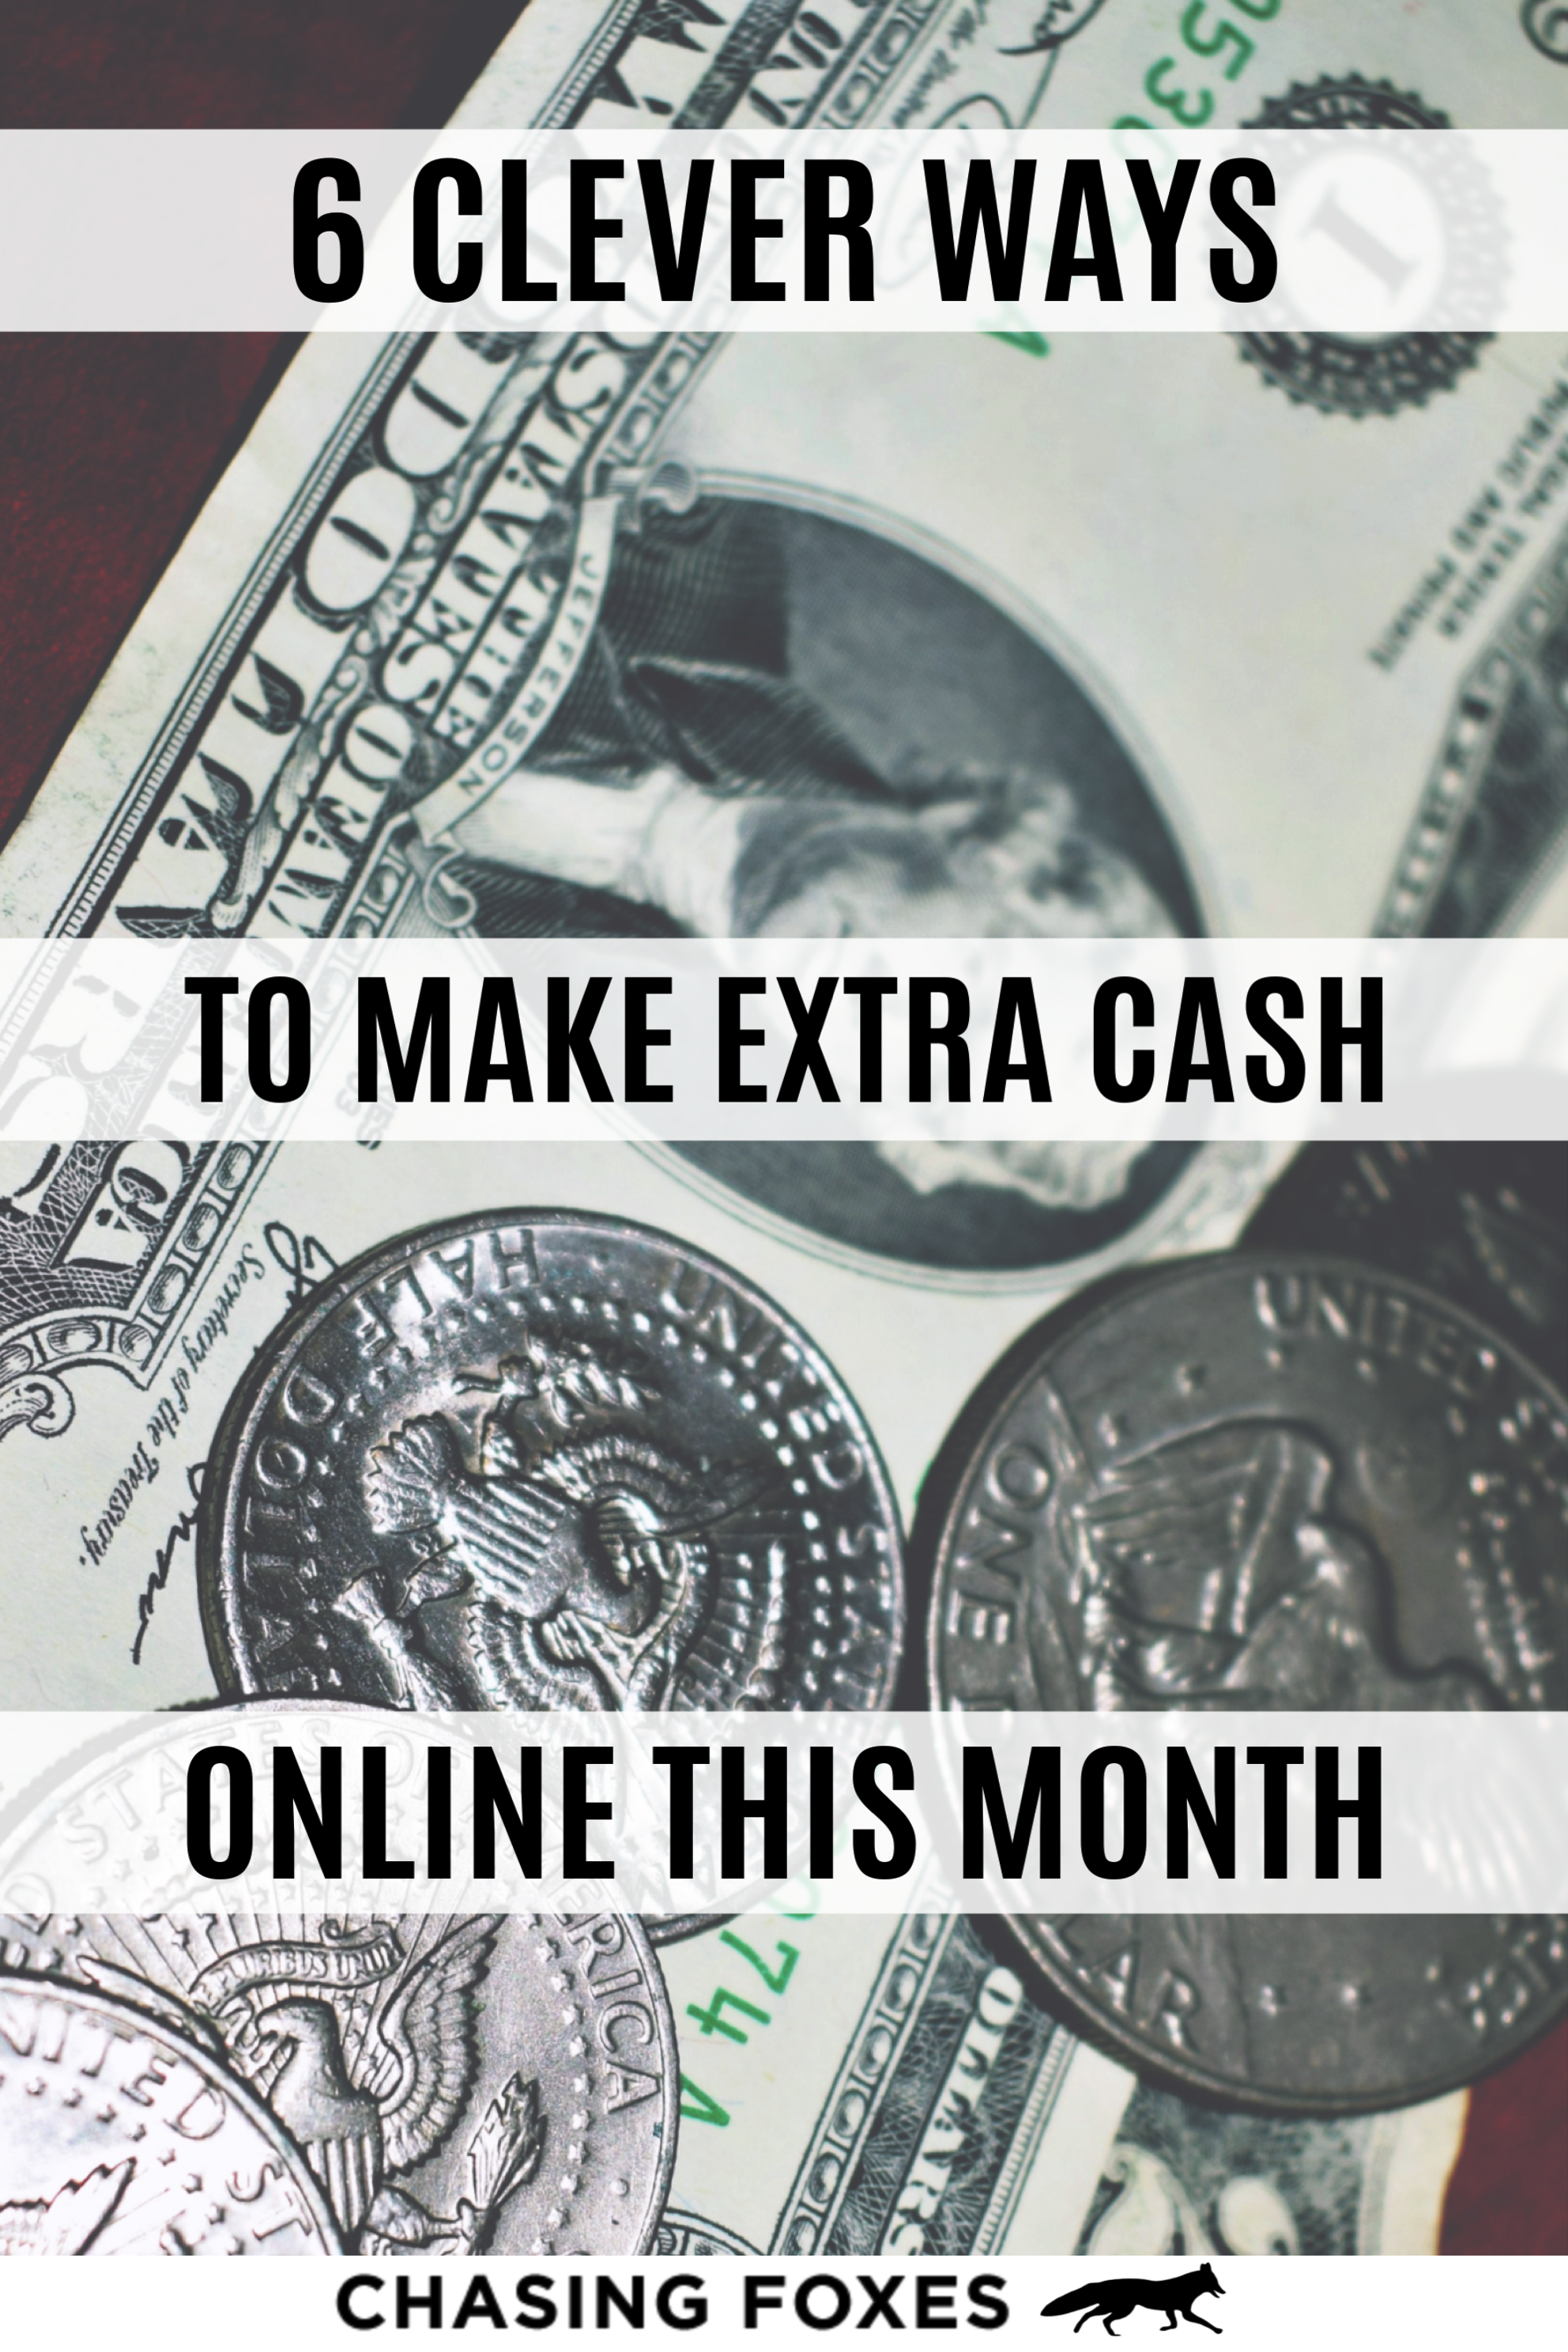 6 Great Ways You Can Make Extra Cash Online This Month In